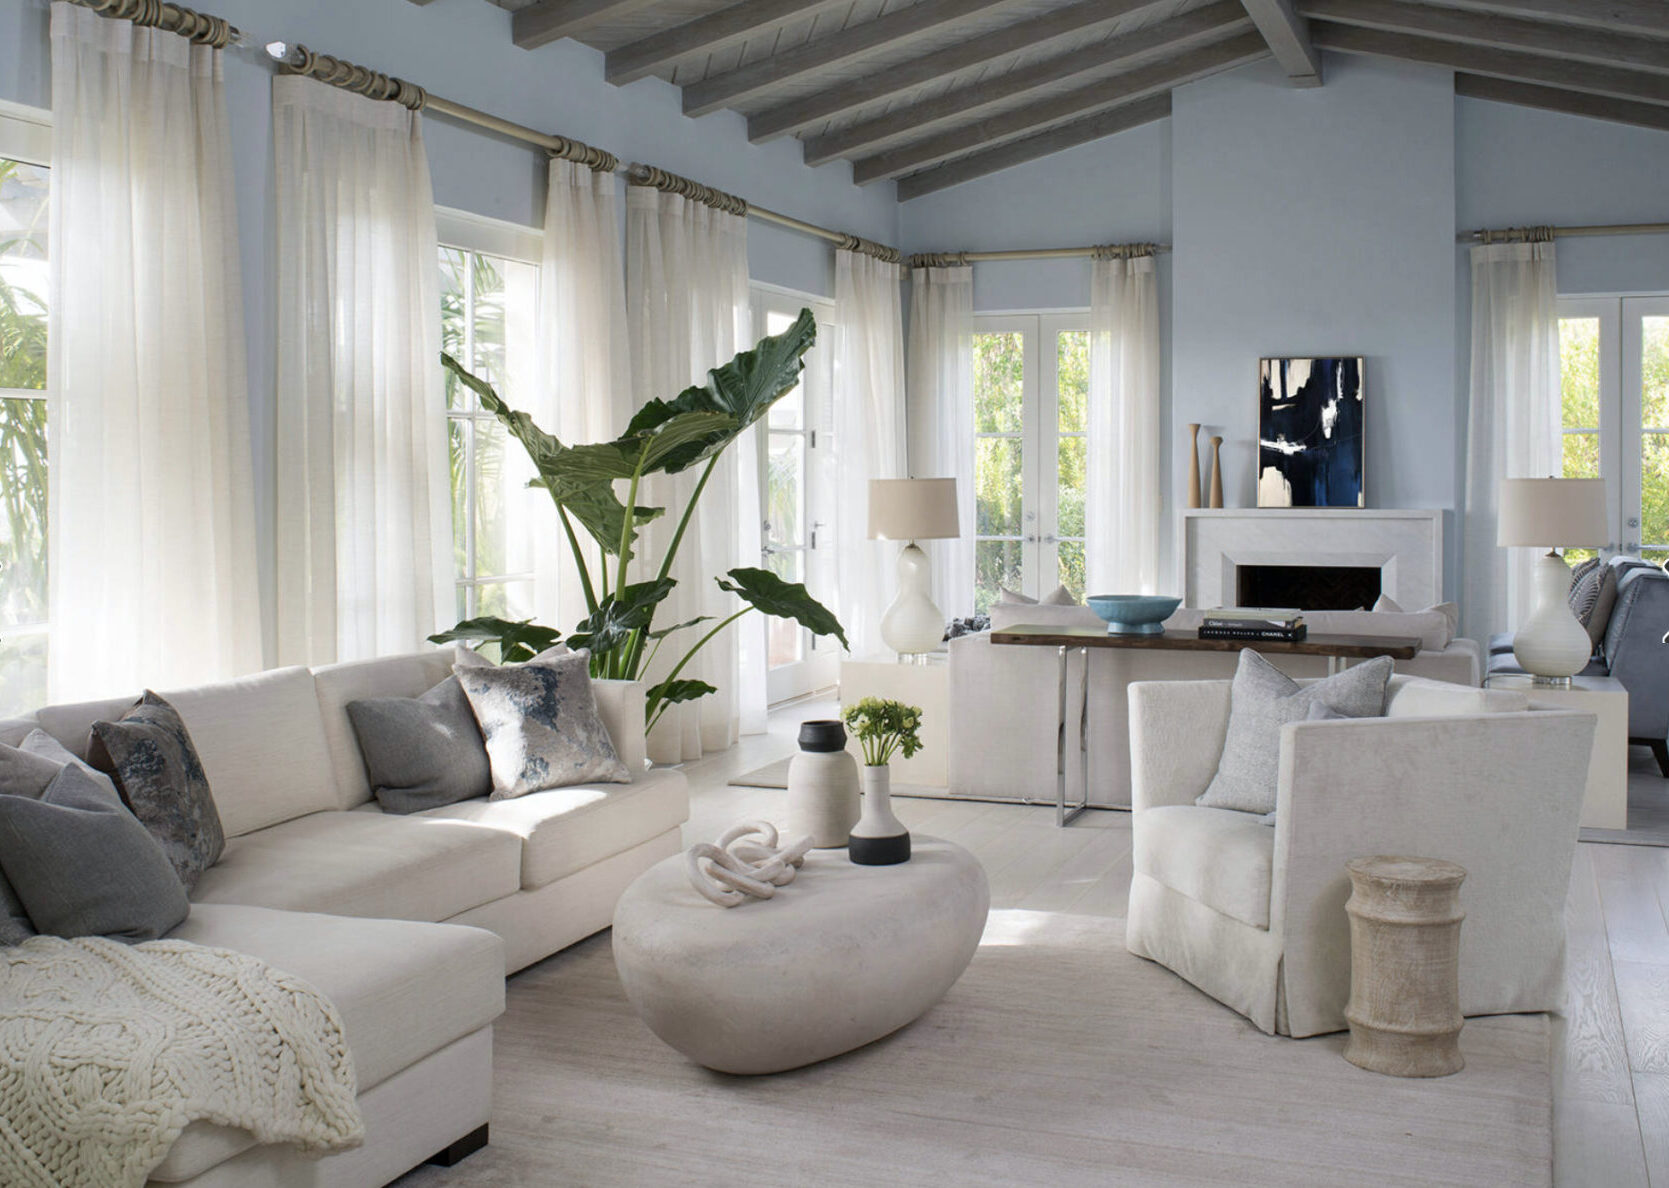 White and blue interior with botanical